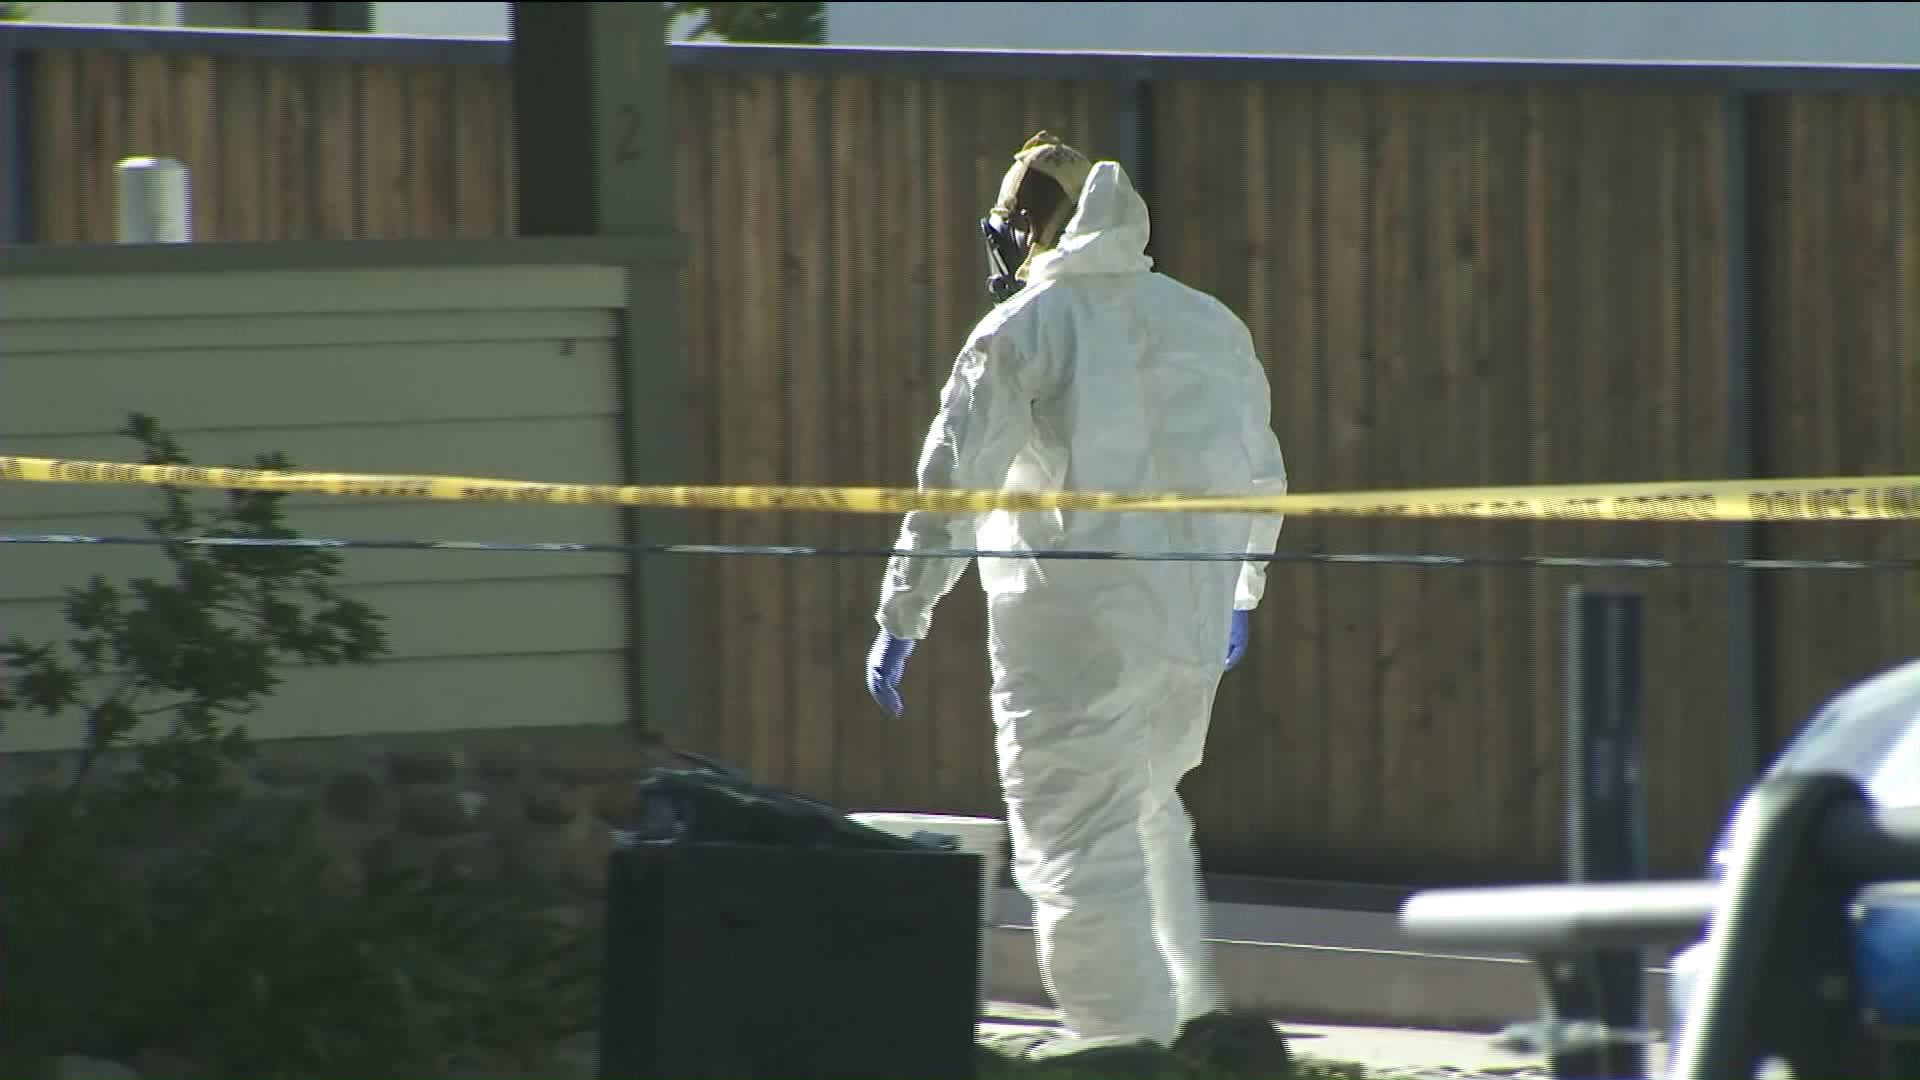 A hazmat crew removed chemicals believed to be used in the manufacture of illegal drugs from a home in Monrovia on April 24, 2019. (Credit: KTLA)